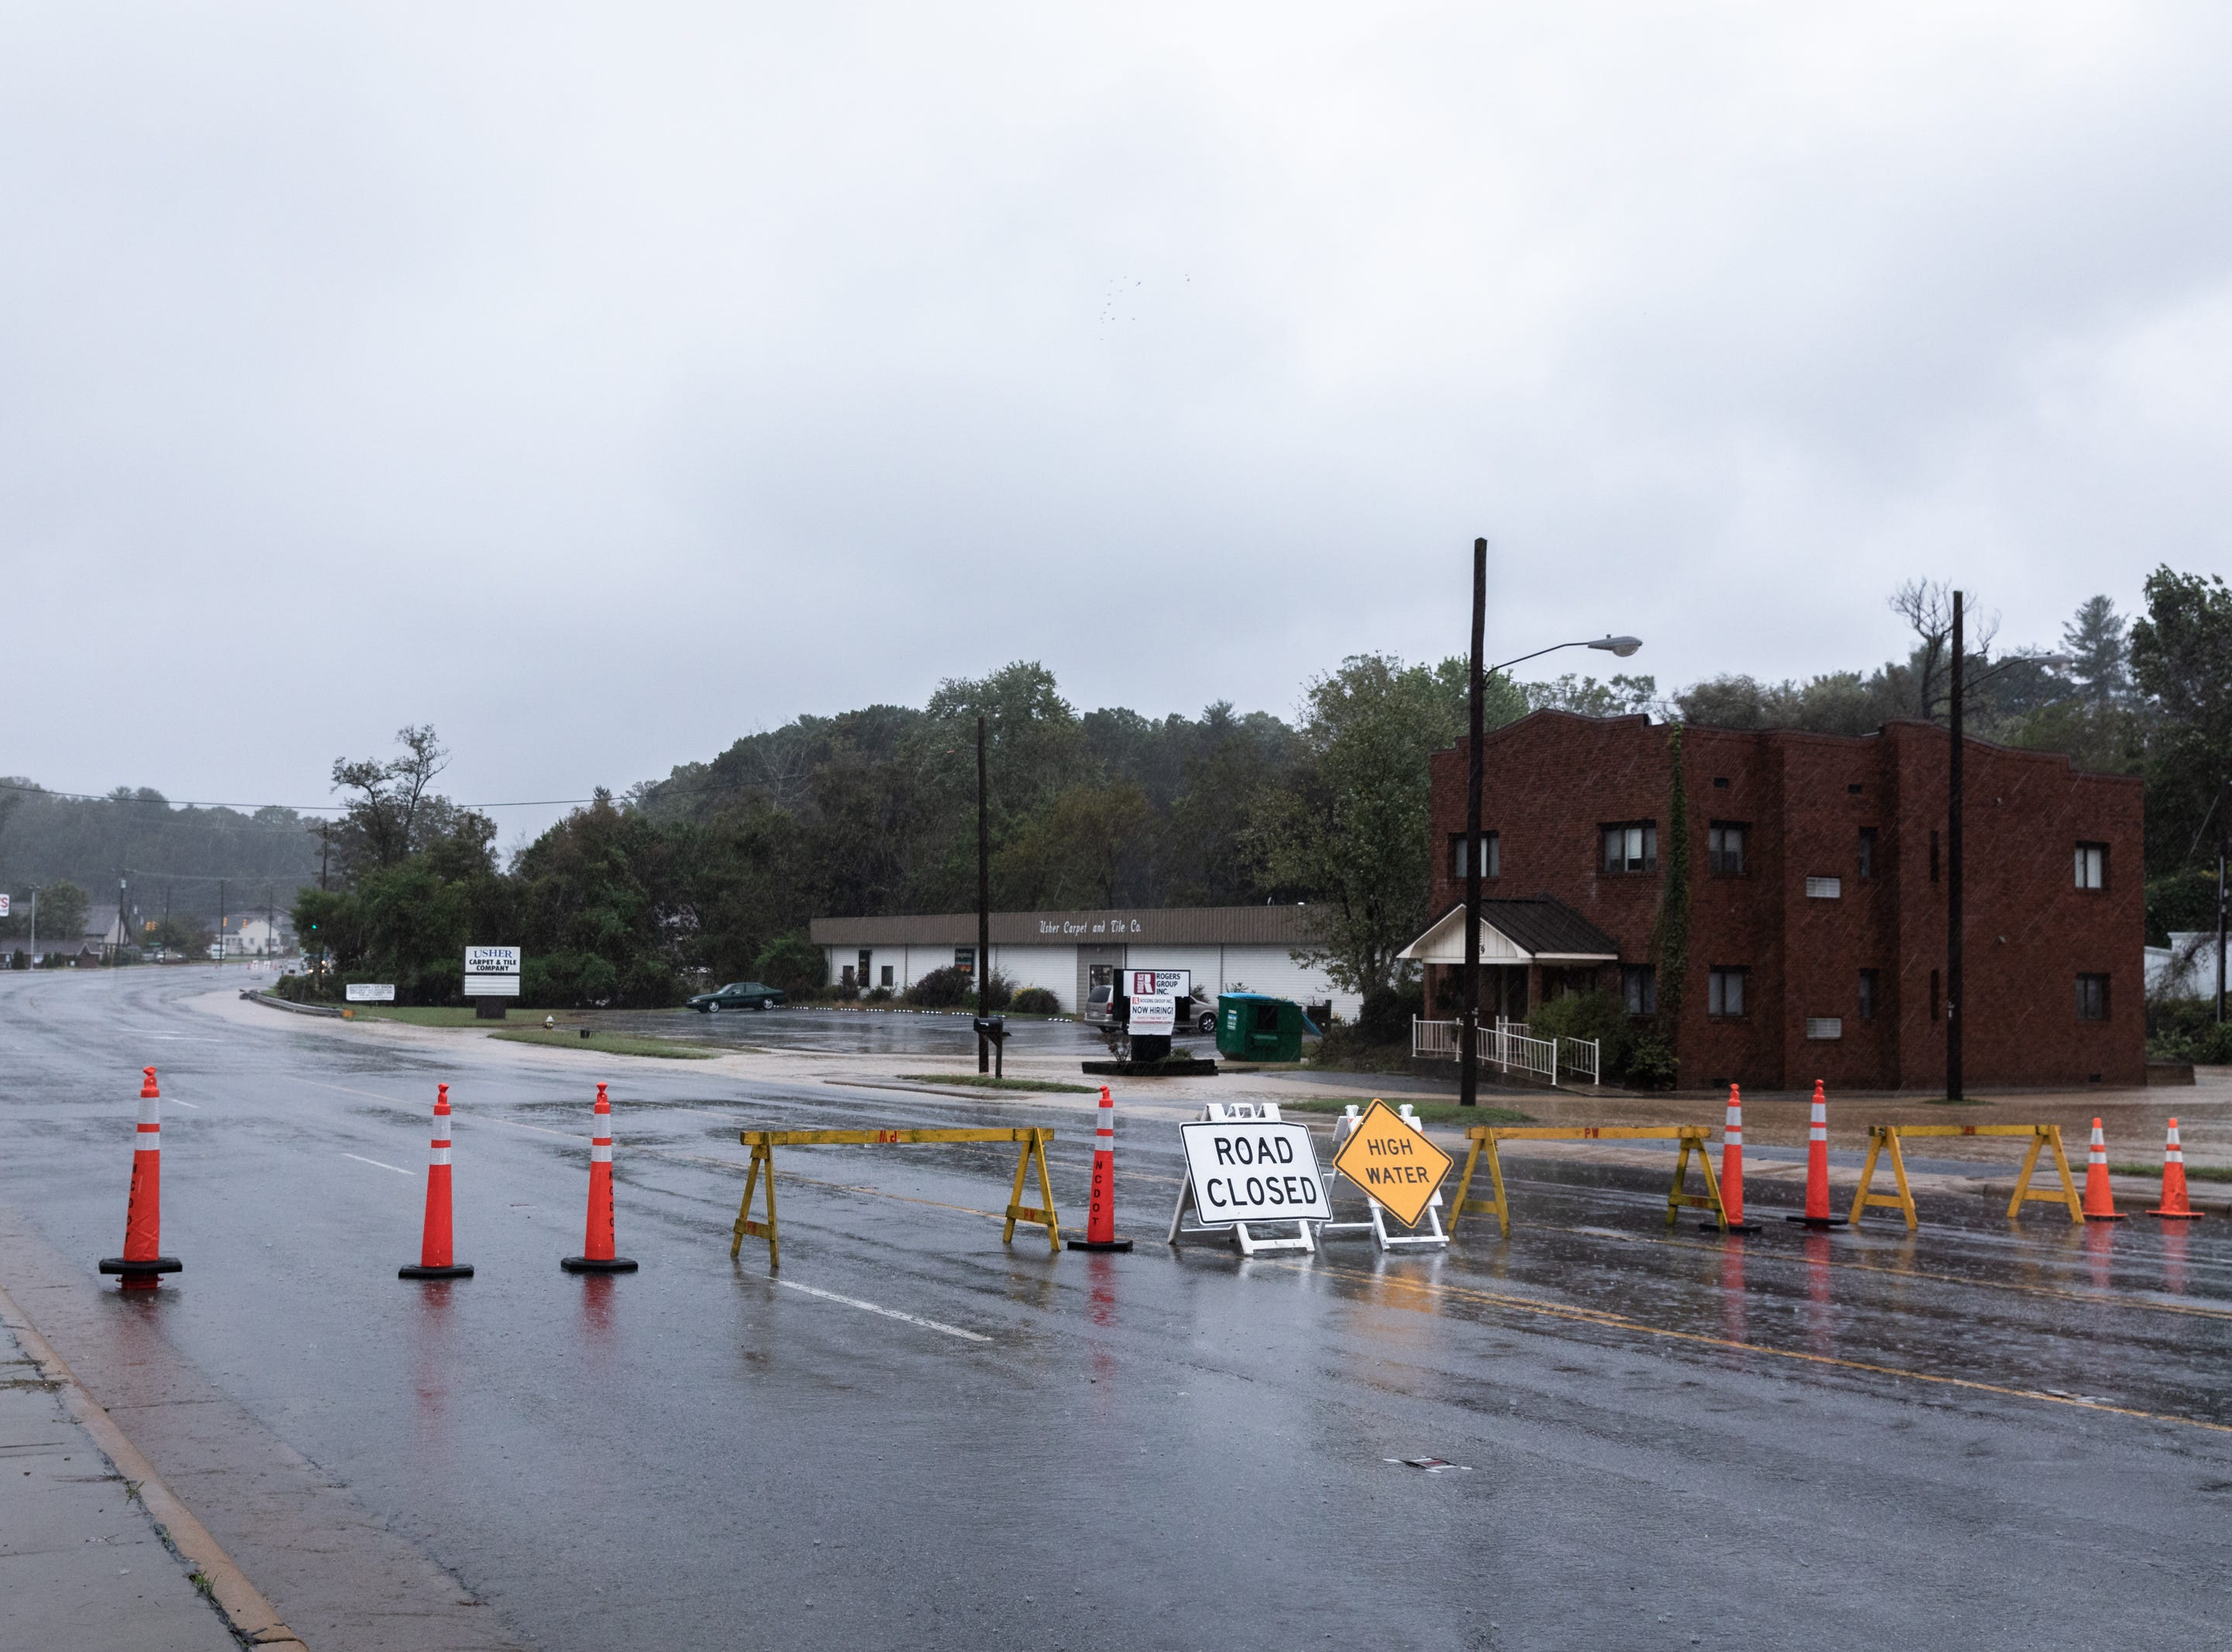 A roadblock on Asheville Highway in Hendersonville where several roads have been closed due to flooding Oct. 11, 2018.